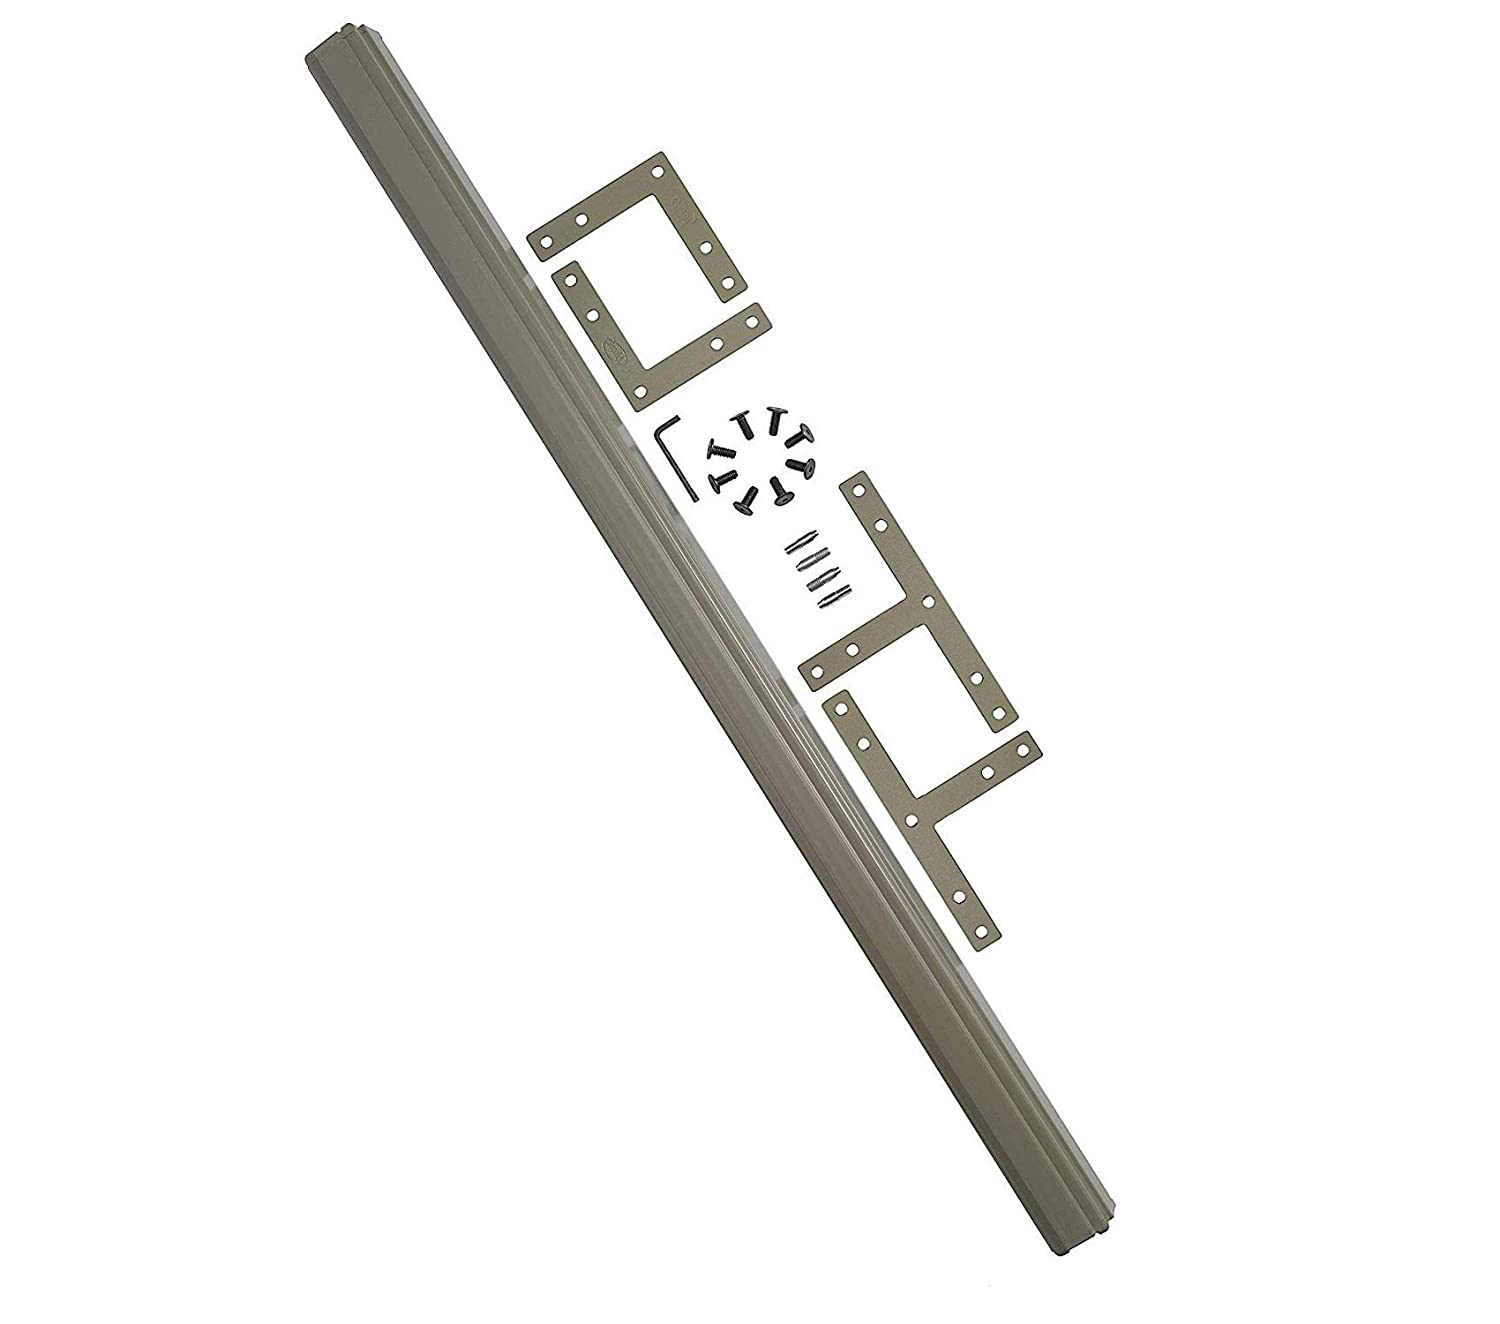 Bush Businеss Furniturе Office Home Furniture Premium ProPanels - 2 Way or 3 Way Connector (for 42H Panels) in Taupe